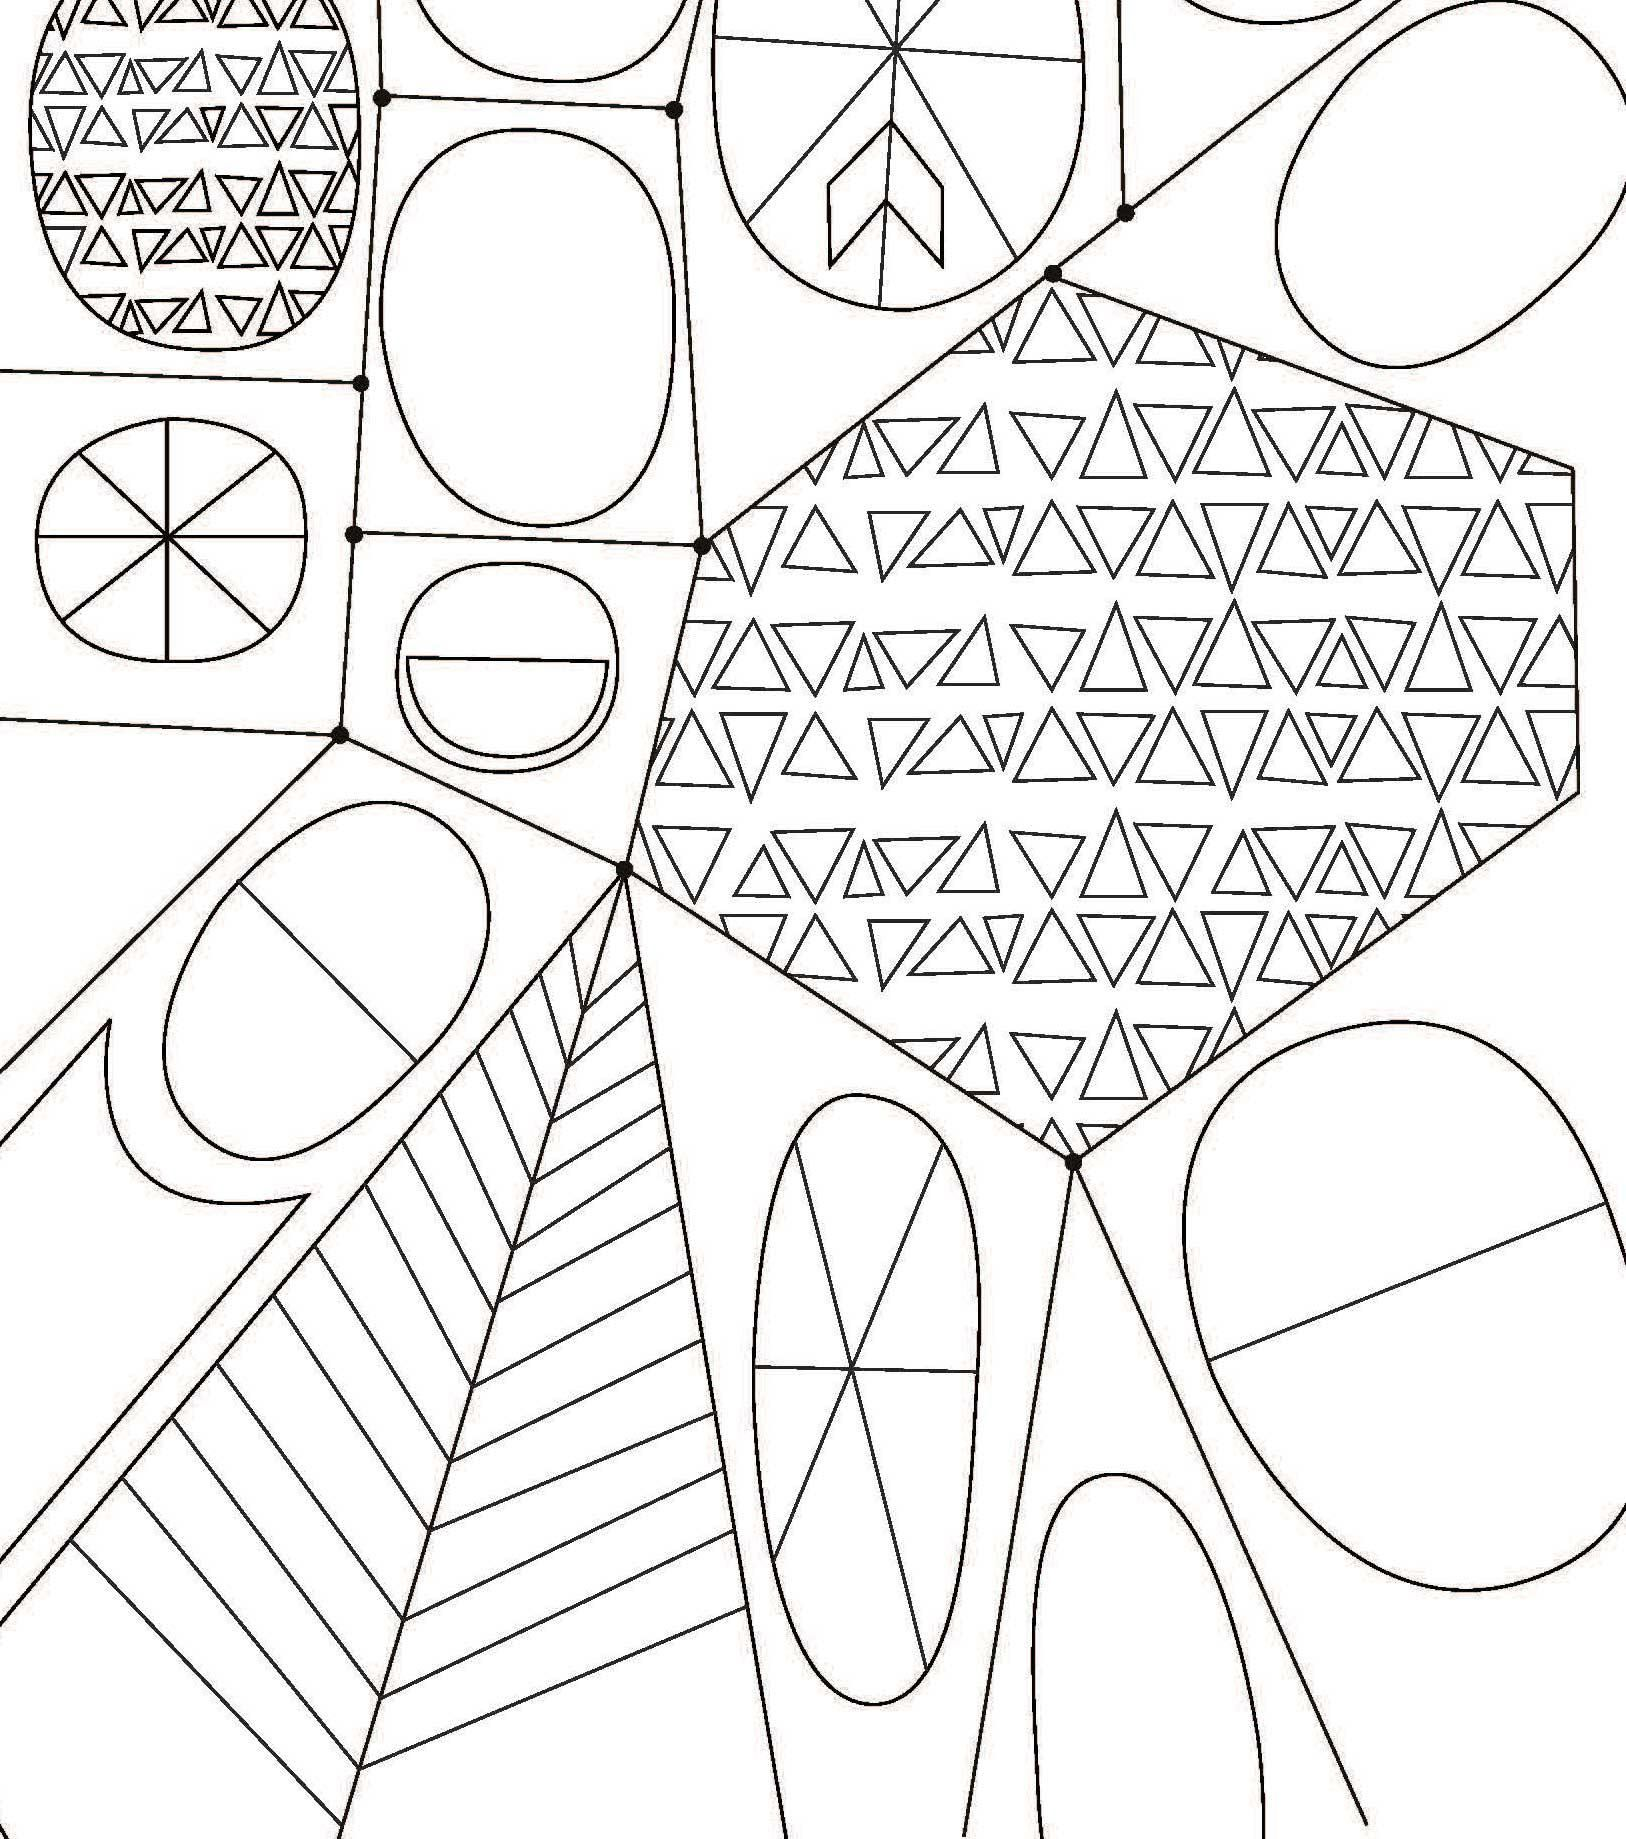 coloring book mid century modern - Modern Patterns Coloring Book